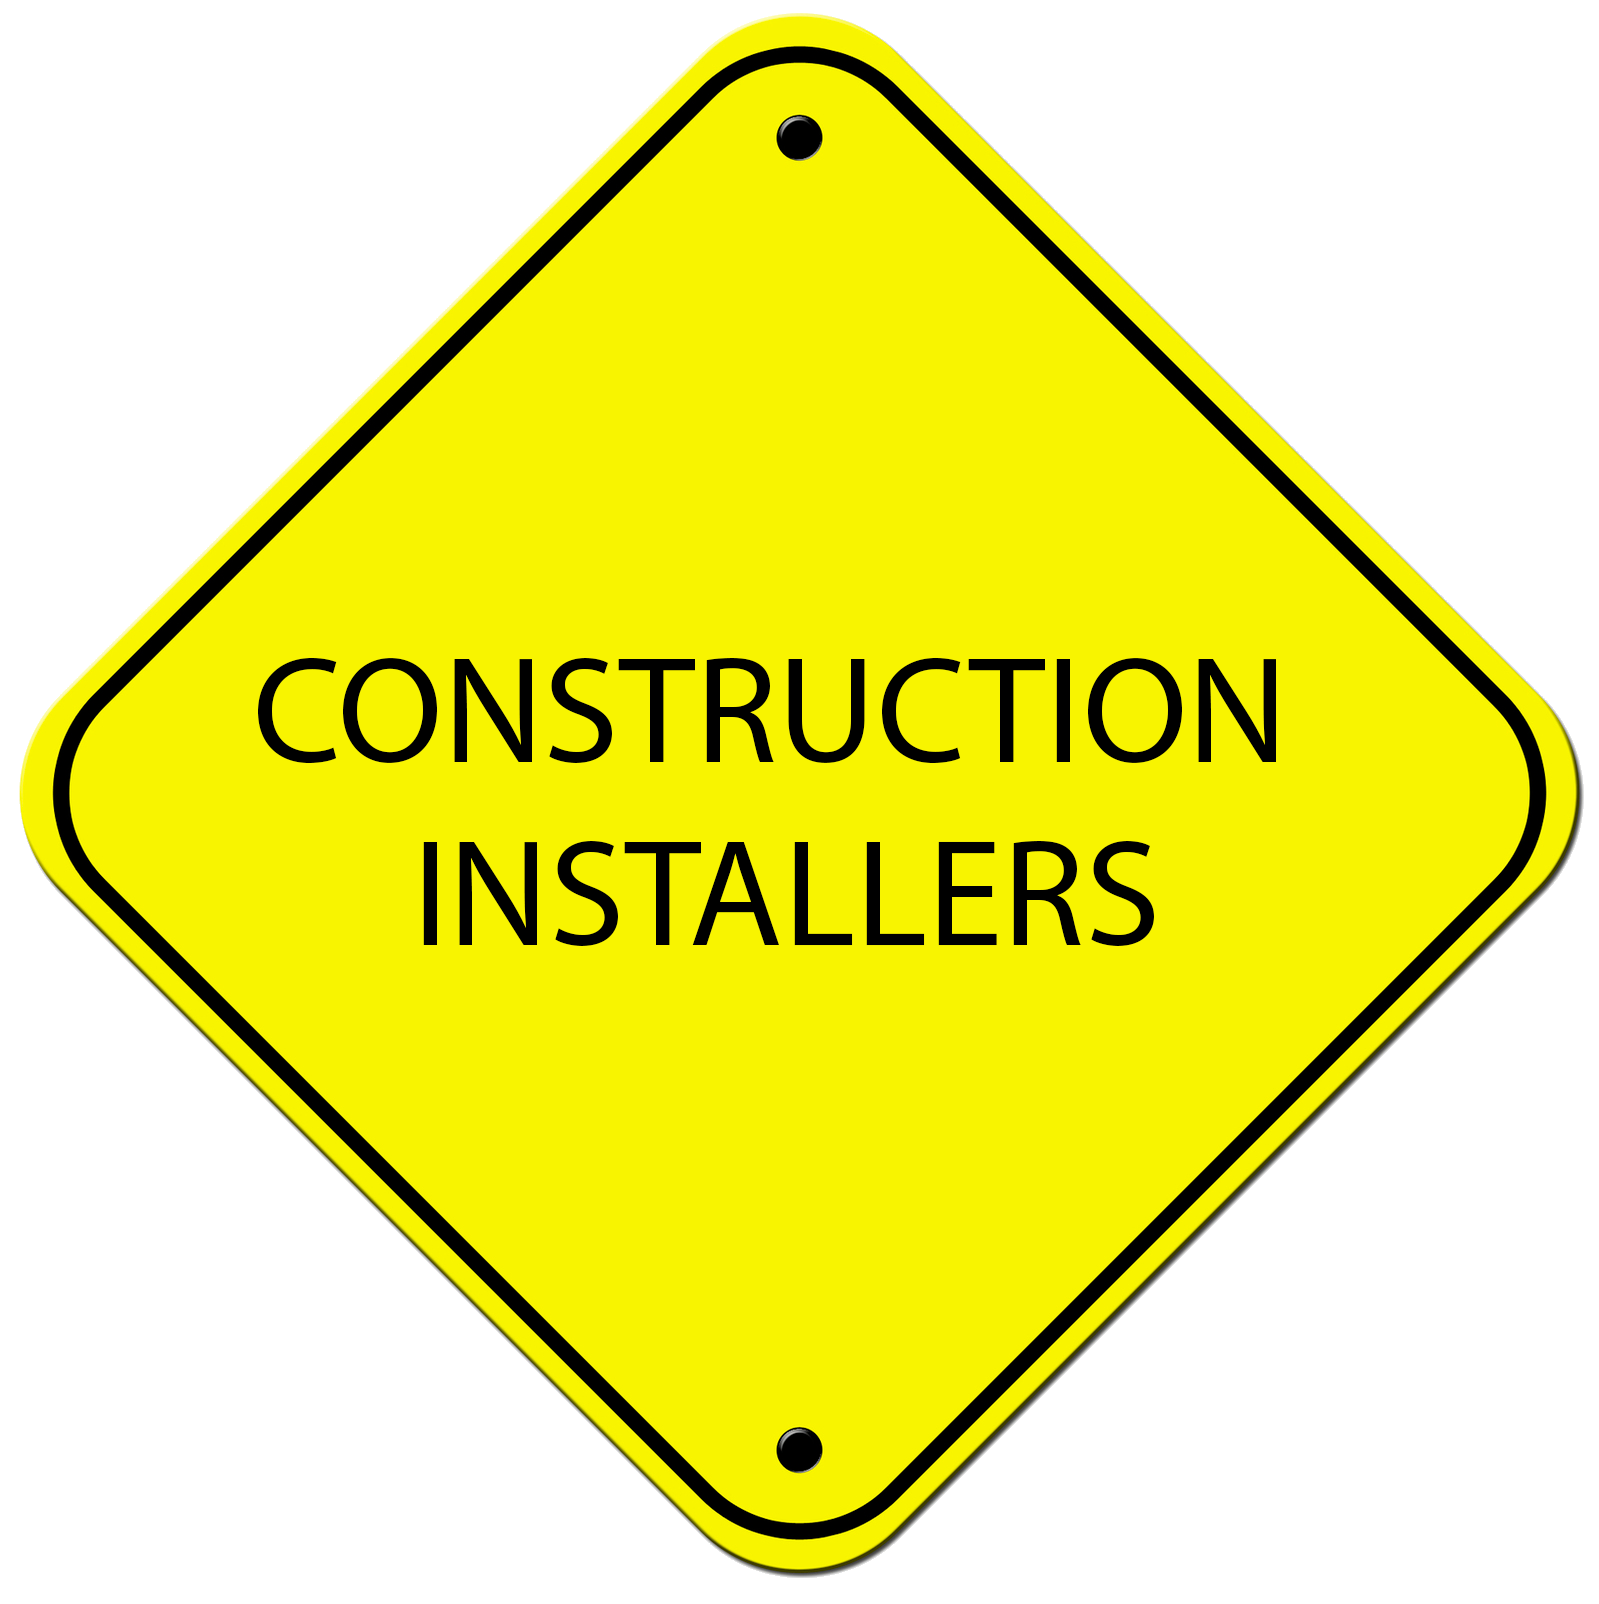 construction installers